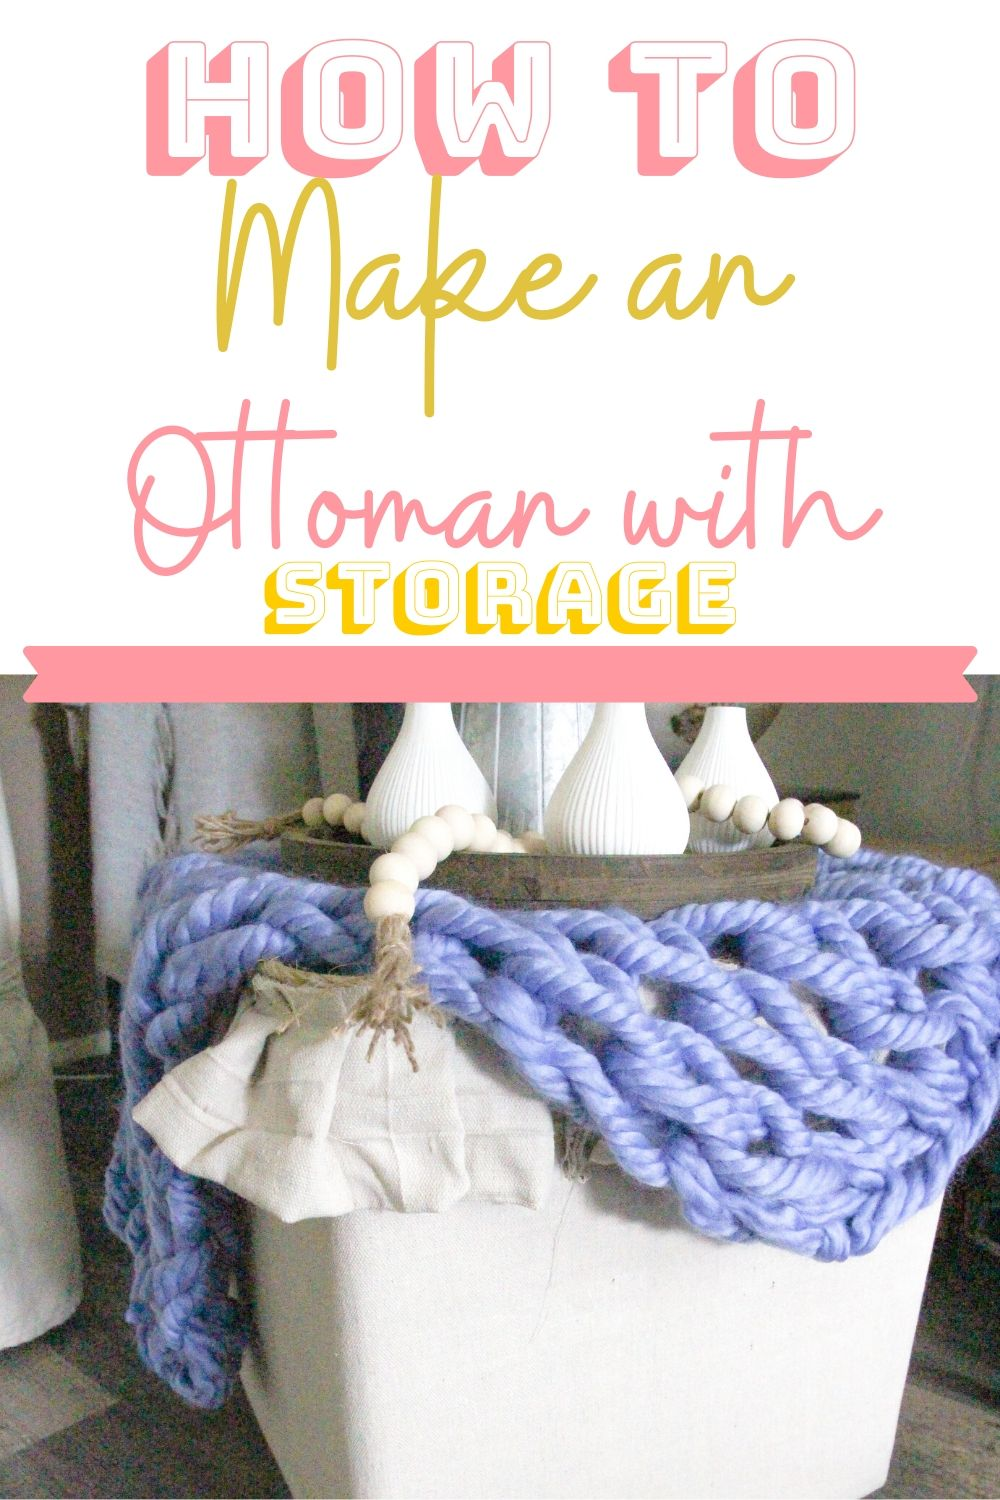 Learn how to make an ottoman with storage. This DIY ottoman with storage is a simple project that you can make from using supplies you have around the house. #diy #ottoman #extrastorage #livingroomstorage via @homebyjenn